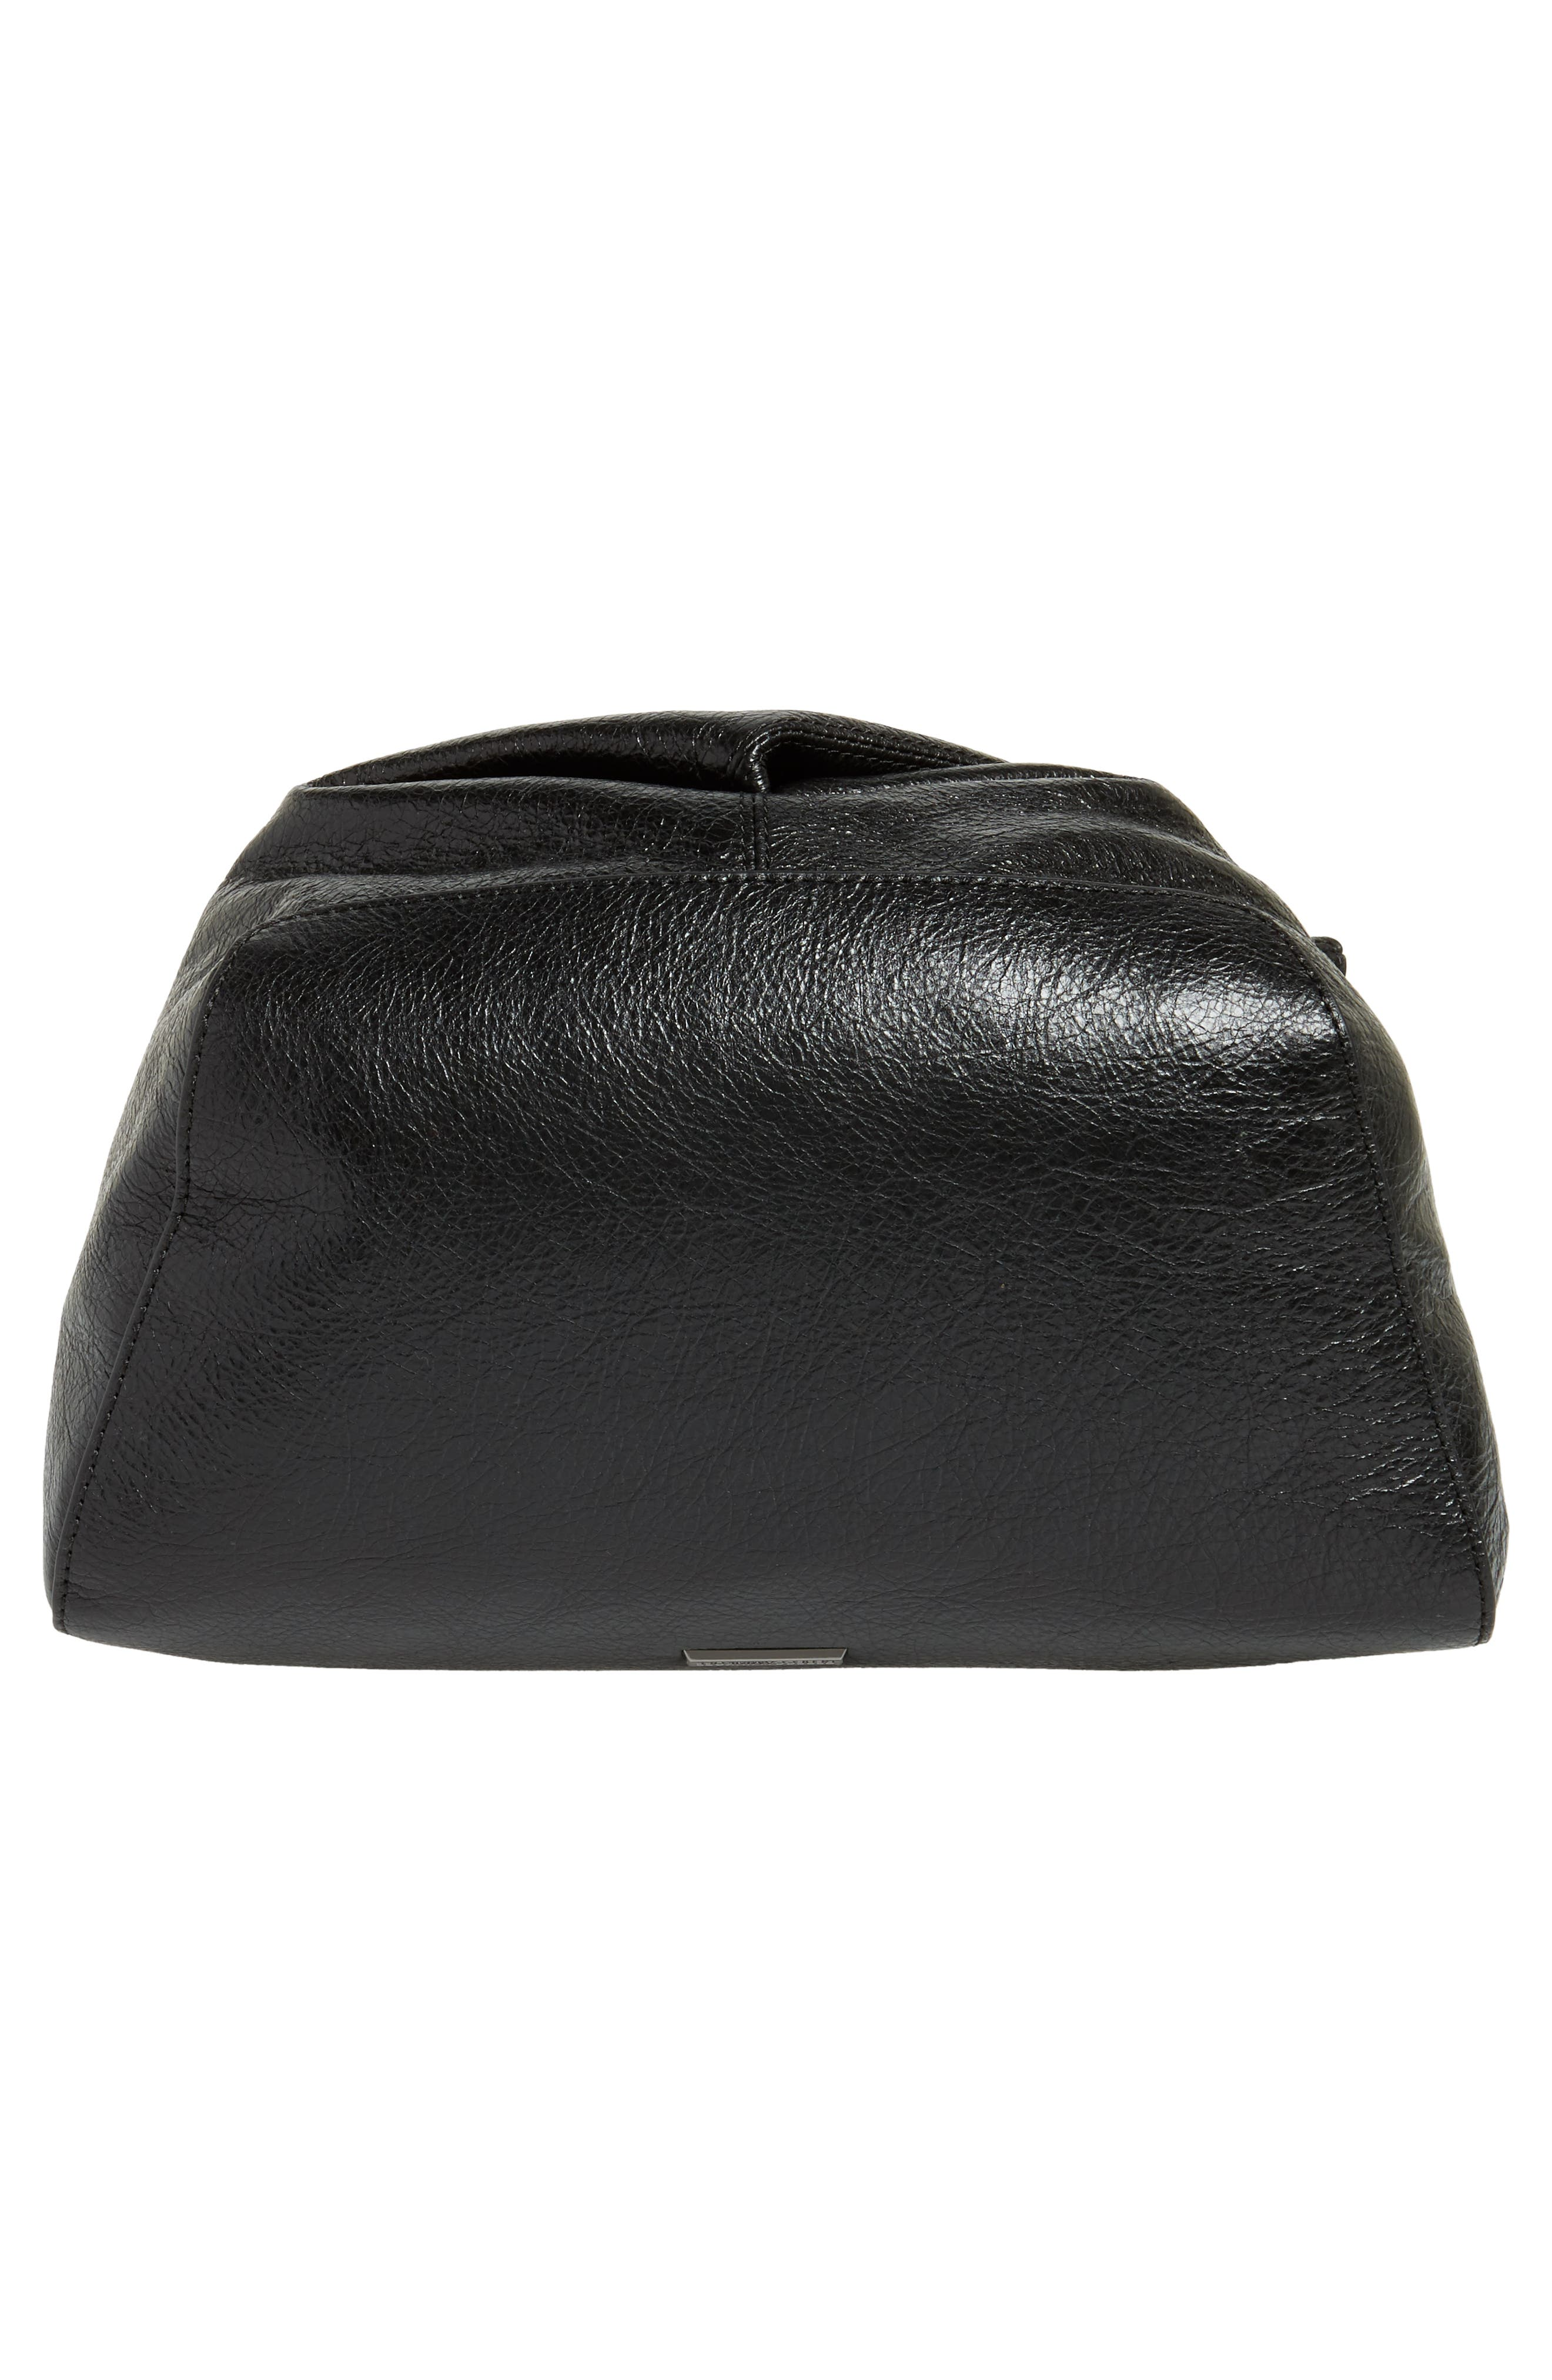 Jamie Leather Backpack,                             Alternate thumbnail 11, color,